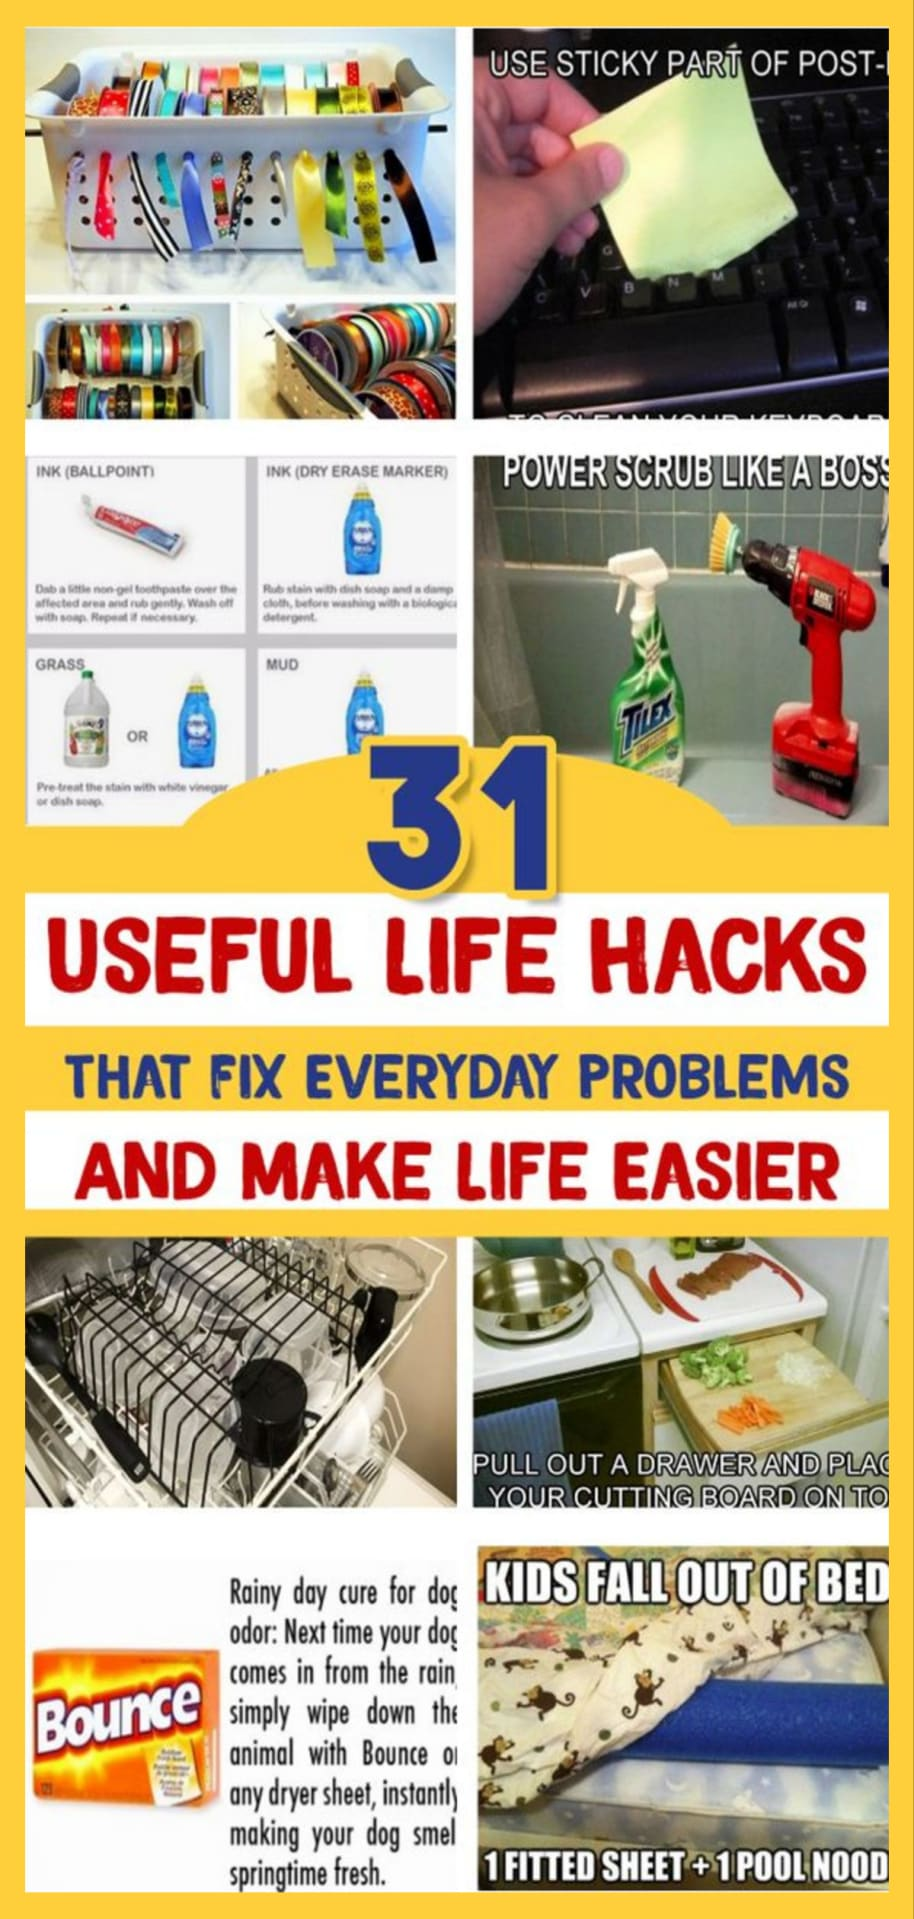 Useful Life Hacks - MIND BLOWN!  Households life hacks and good to know hacks tips and lifehacks - these household hacks, cleaning tips & tricks are such helpful hints and life changing lifehacks every girl should know. Smart Tips for Everyday Life!  These real life hacks and cheats are simple life hacks to use around the house. Useful life hacks that fix everyday problems and make life easier.  Cleaning hacks, Household hacks, life hacks mind blown and life hacks for home organization.  Life hacks for home and cool household hacks, tips and tricks.